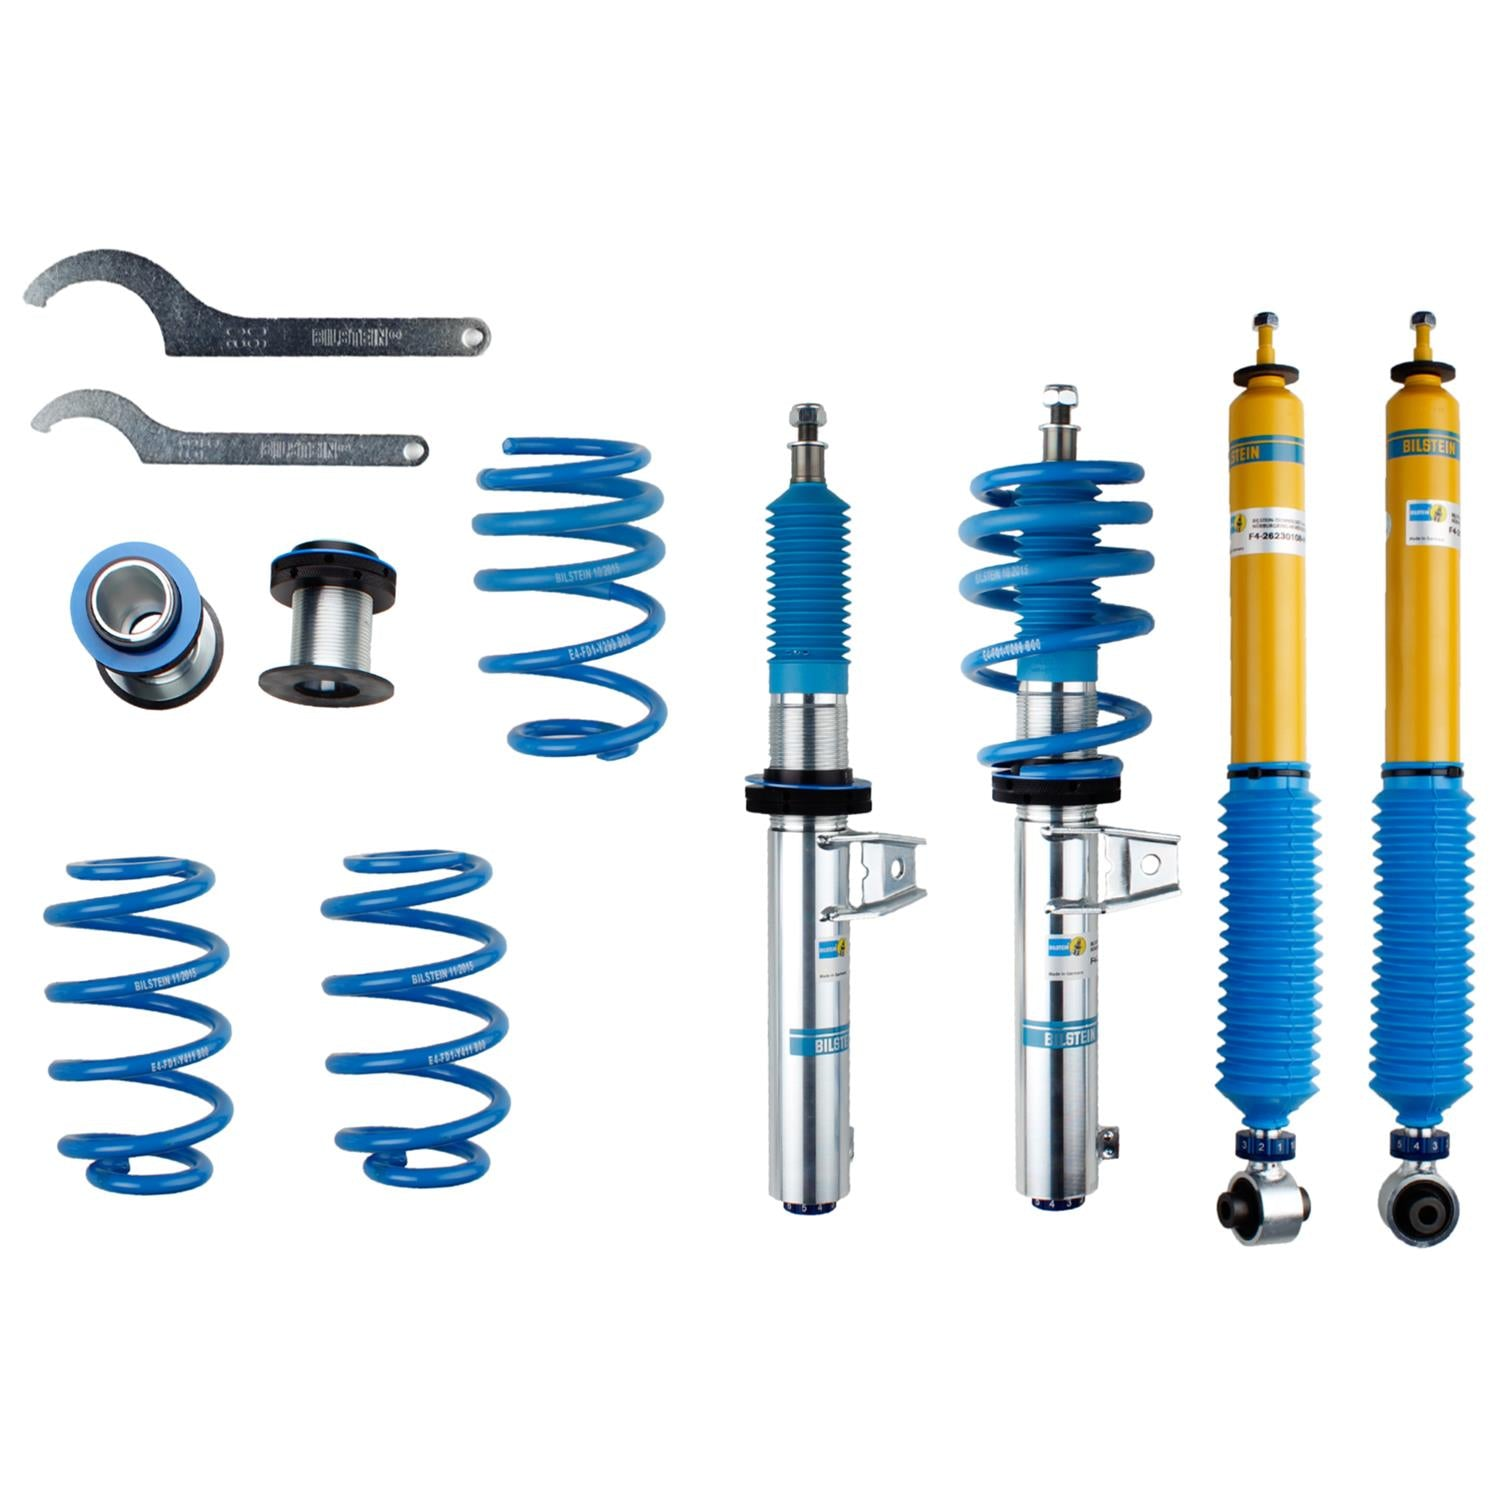 Bilstein B16 (PSS10) Golf R Front & Rear Performance Suspension System